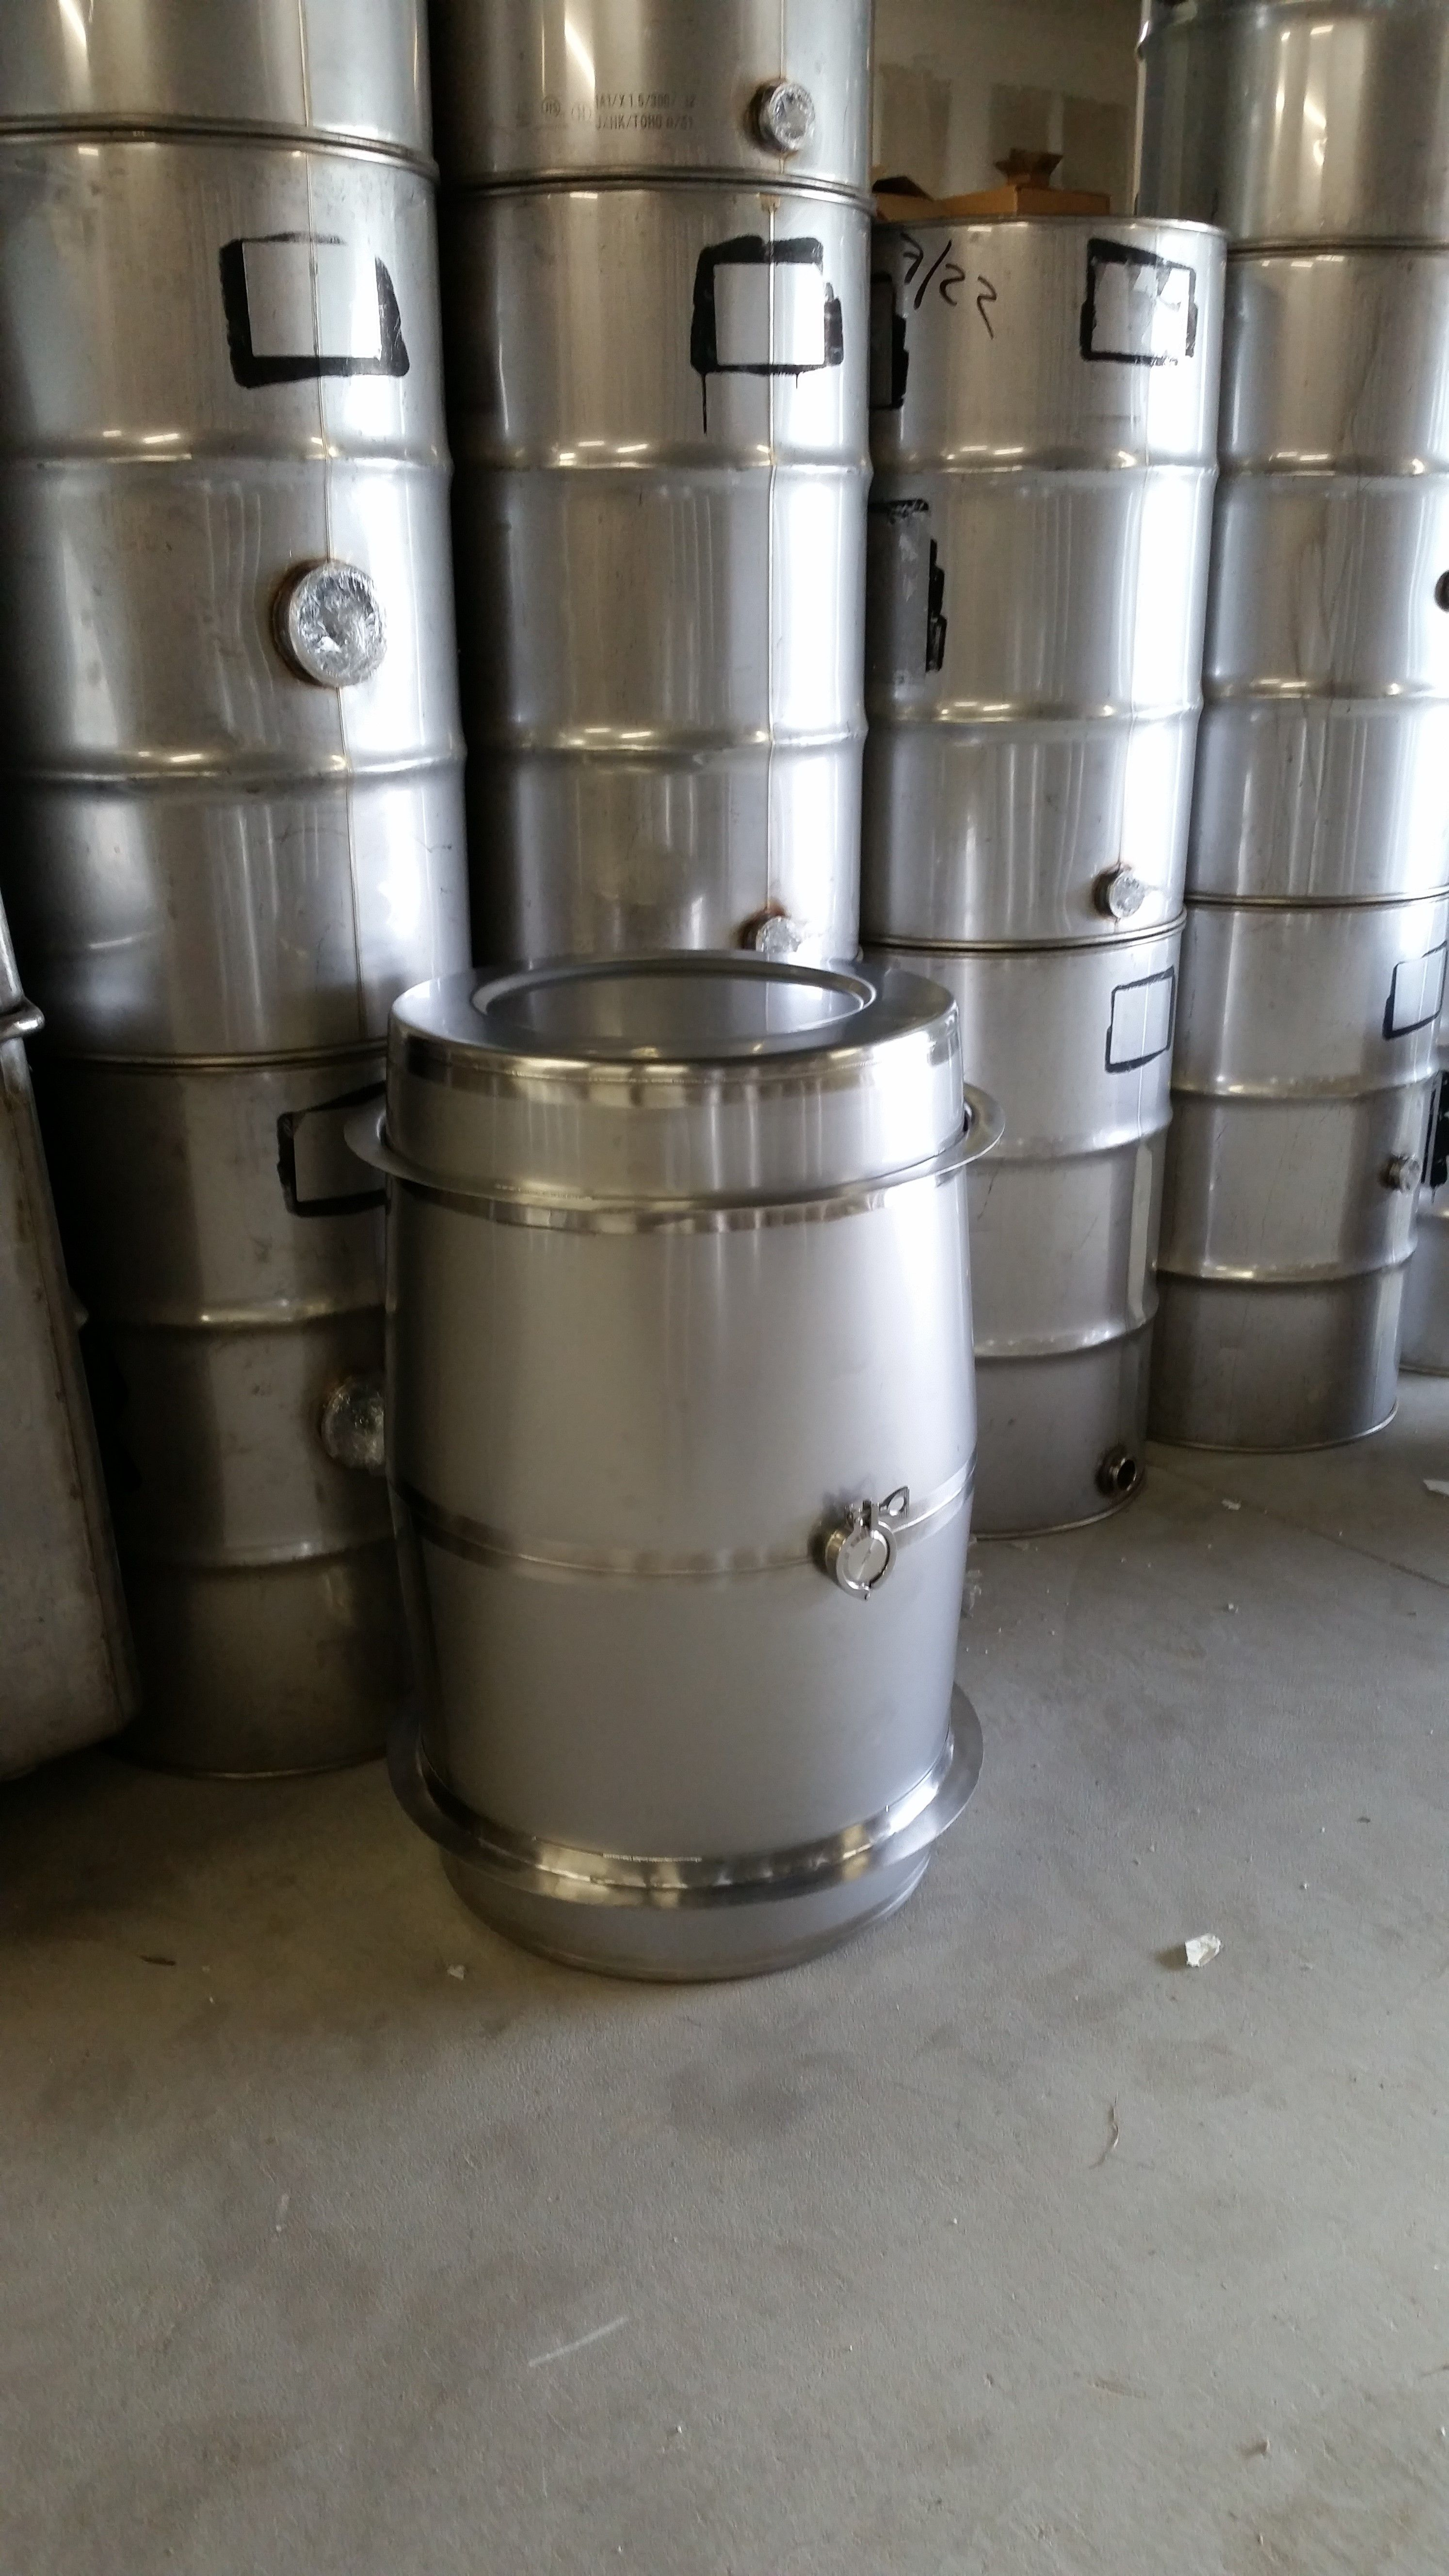 75 Gallon Stainless Steel Wine Barrels Now In Stock 2mm Thick And Seamless Insides See Www Usedstainles Steel Barrel Stainless Steel Accessories Wine Barrel